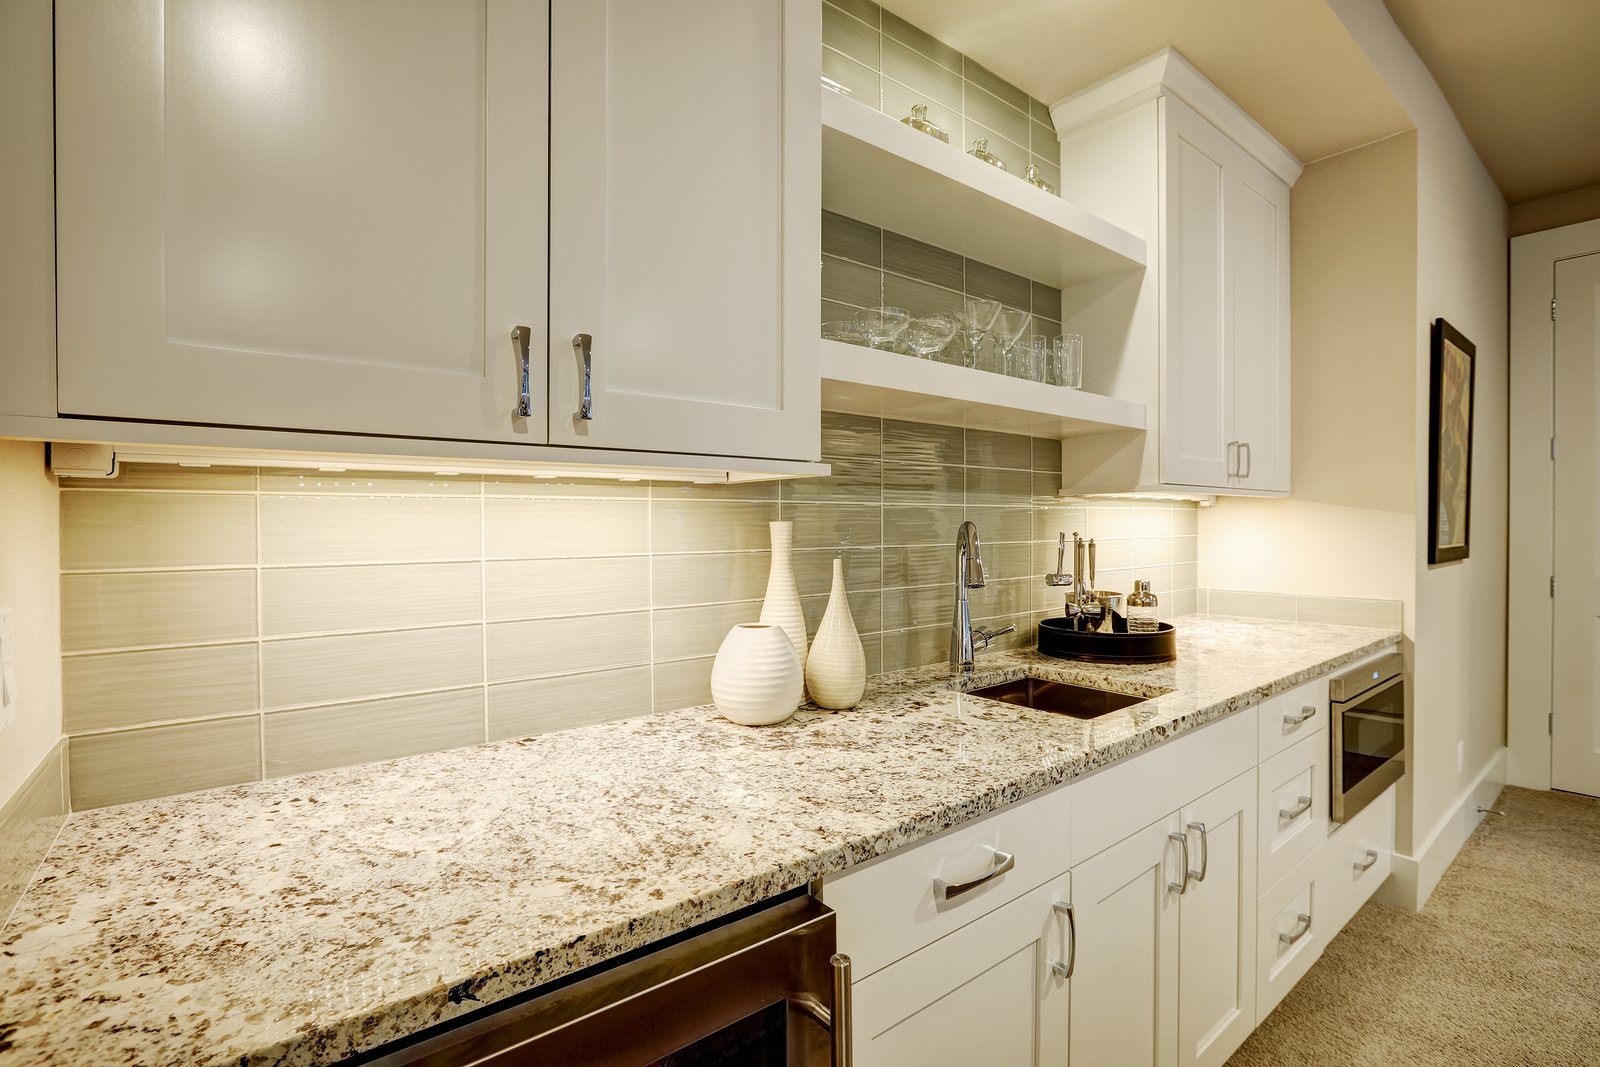 Chic living room features wet bar nook accented with glass subway tiled backsplash white cabinets shelves and granite countertop . Northwest USA